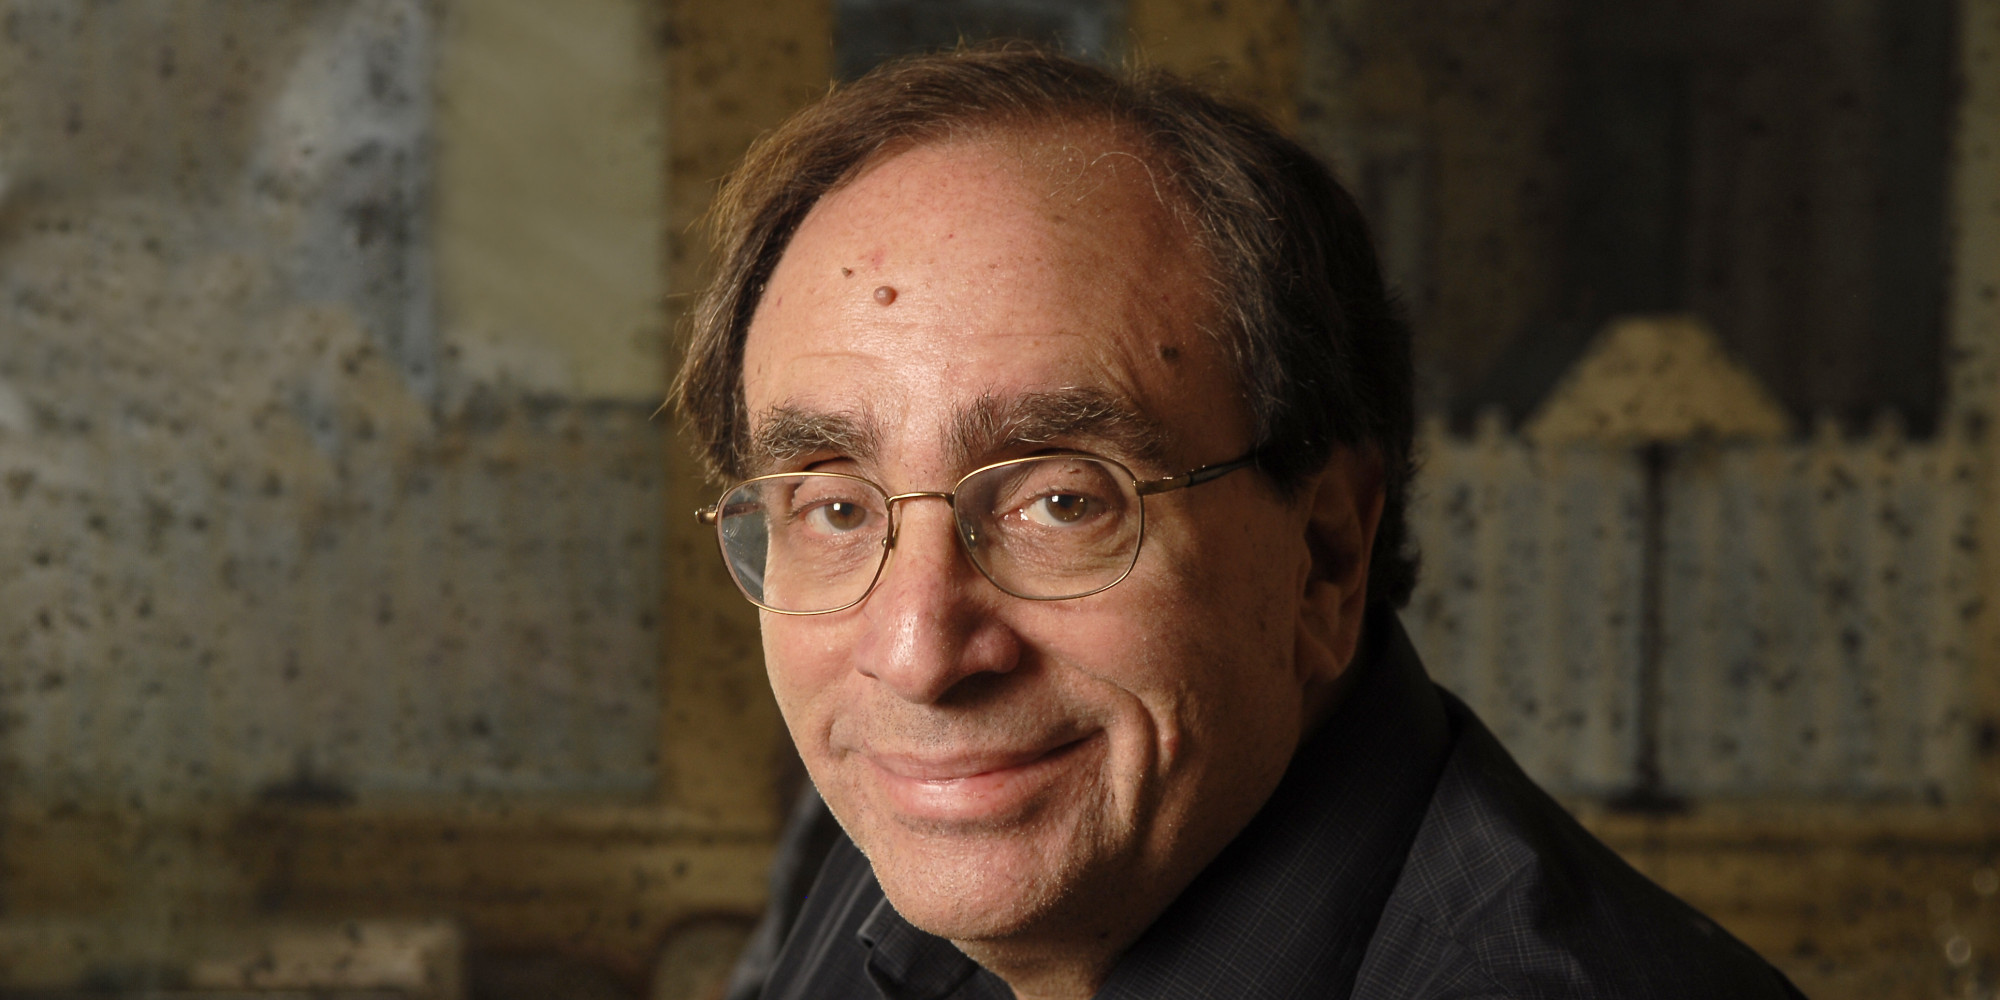 R.L. Stine Is Now Just Tweeting His Scary Stories | Complex